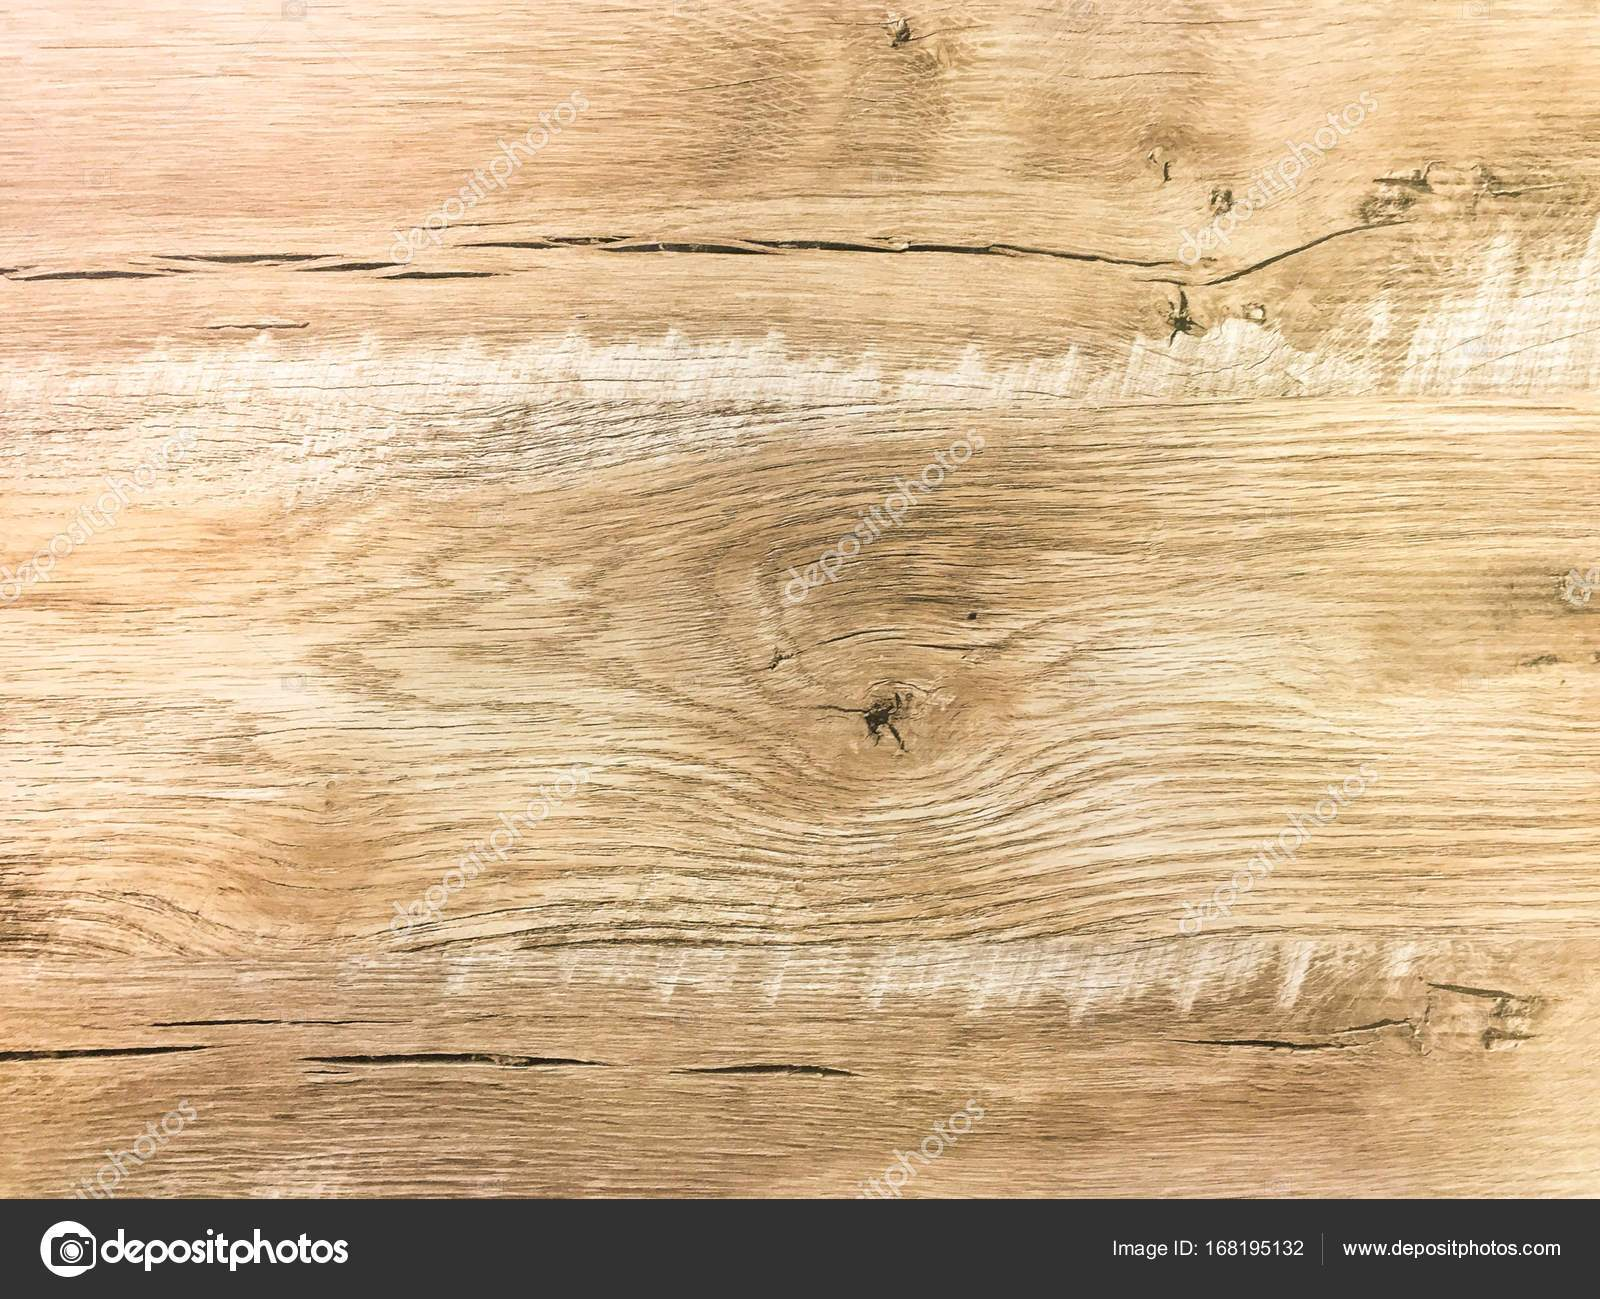 Astonishing Light Wood Texture Background Surface With Old Natural ...